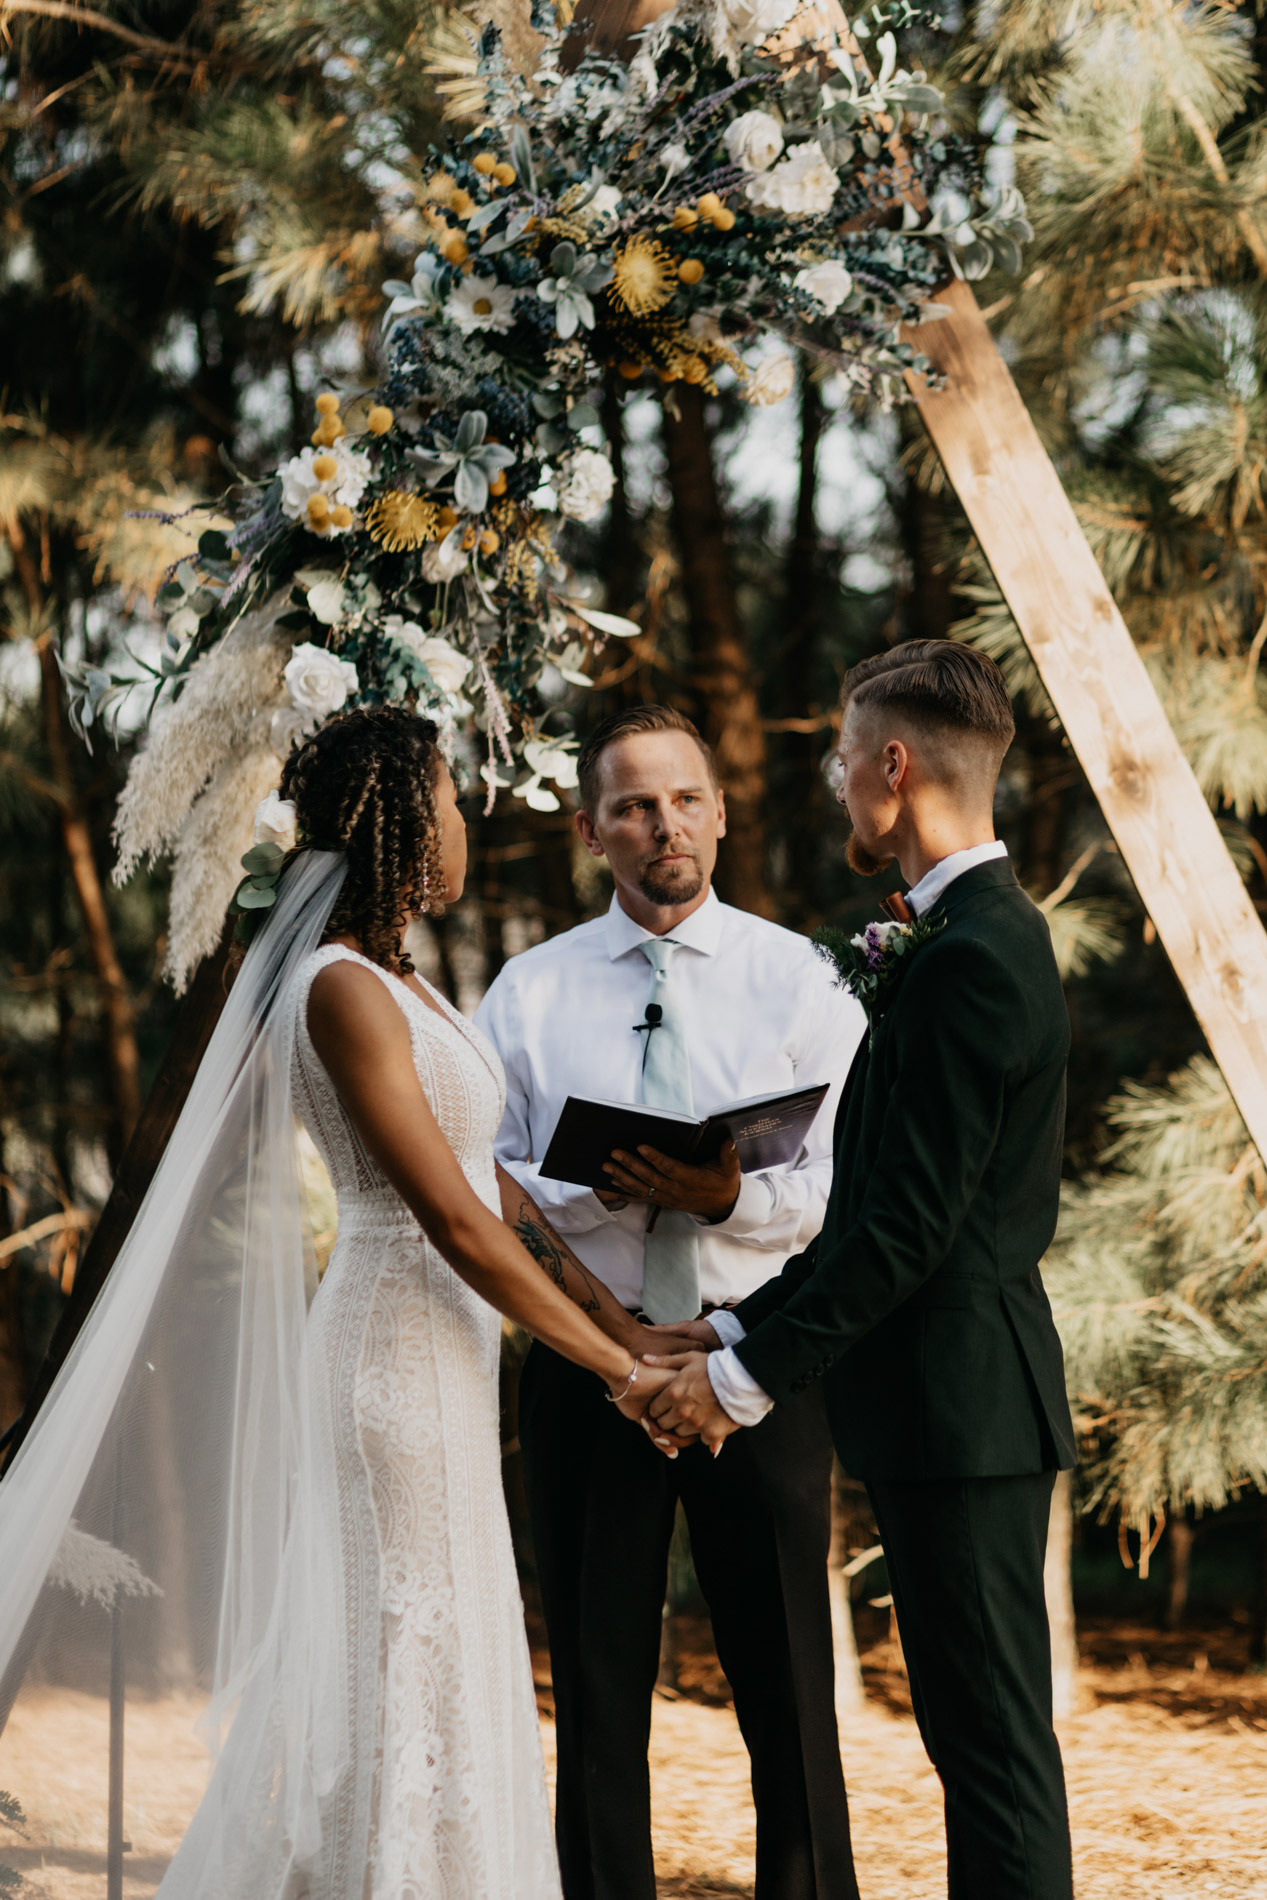 Bride and groom standing at altar on wedding day